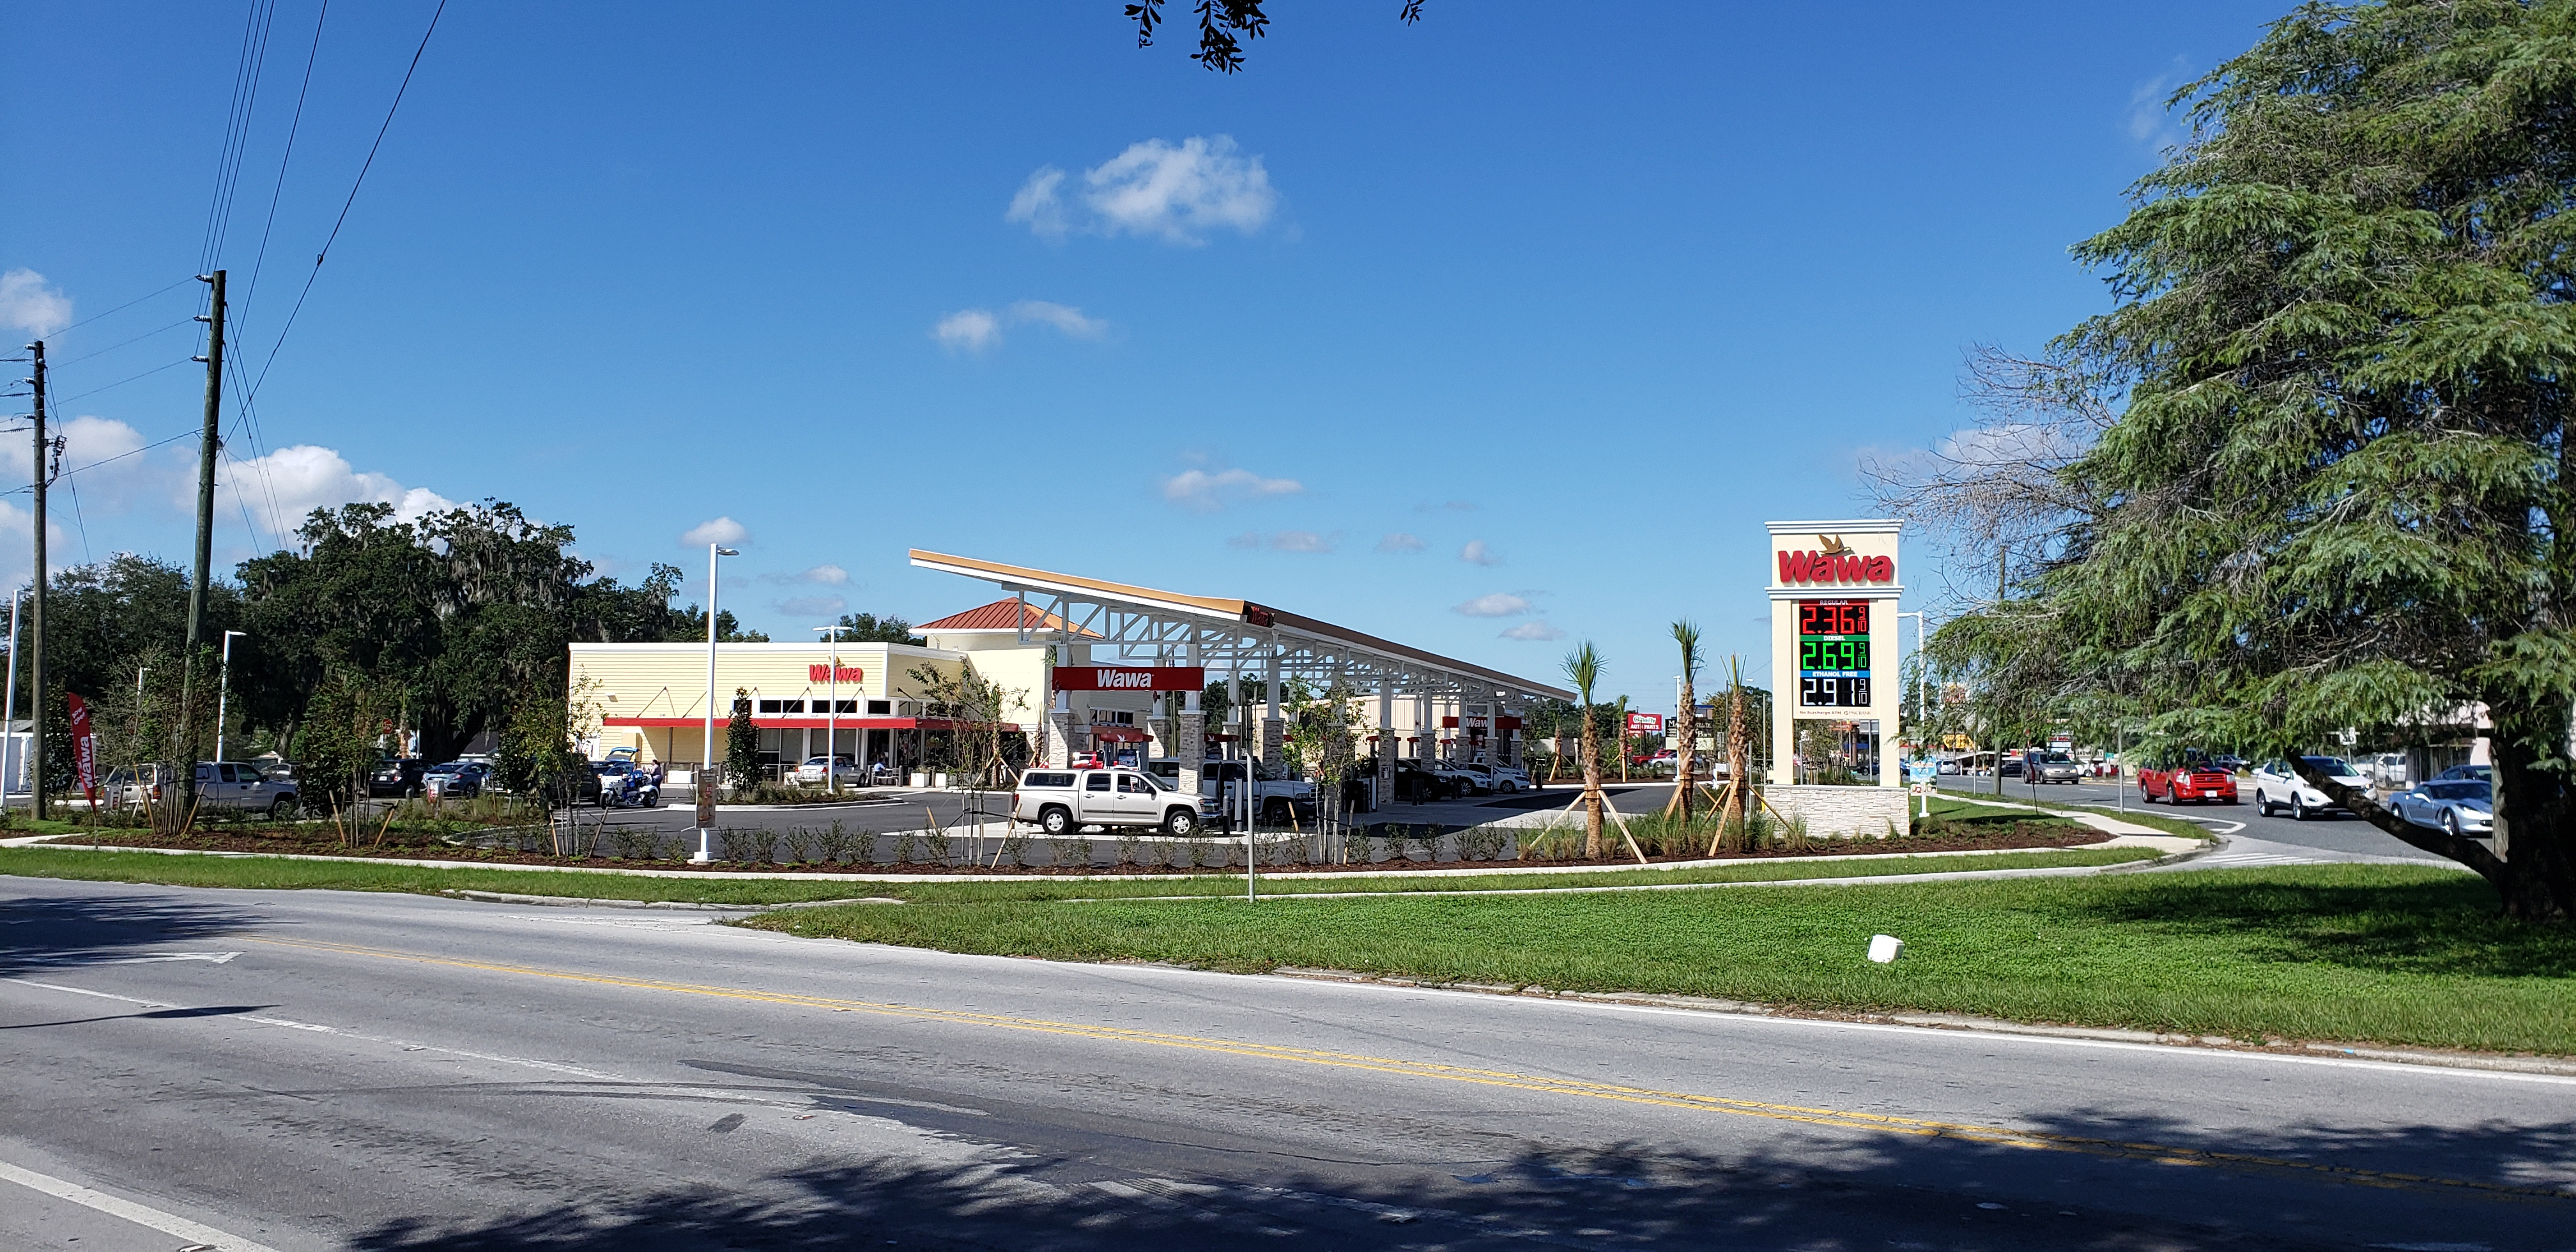 10-20-2019 OCCU Welcomes New Wawa in Belleview